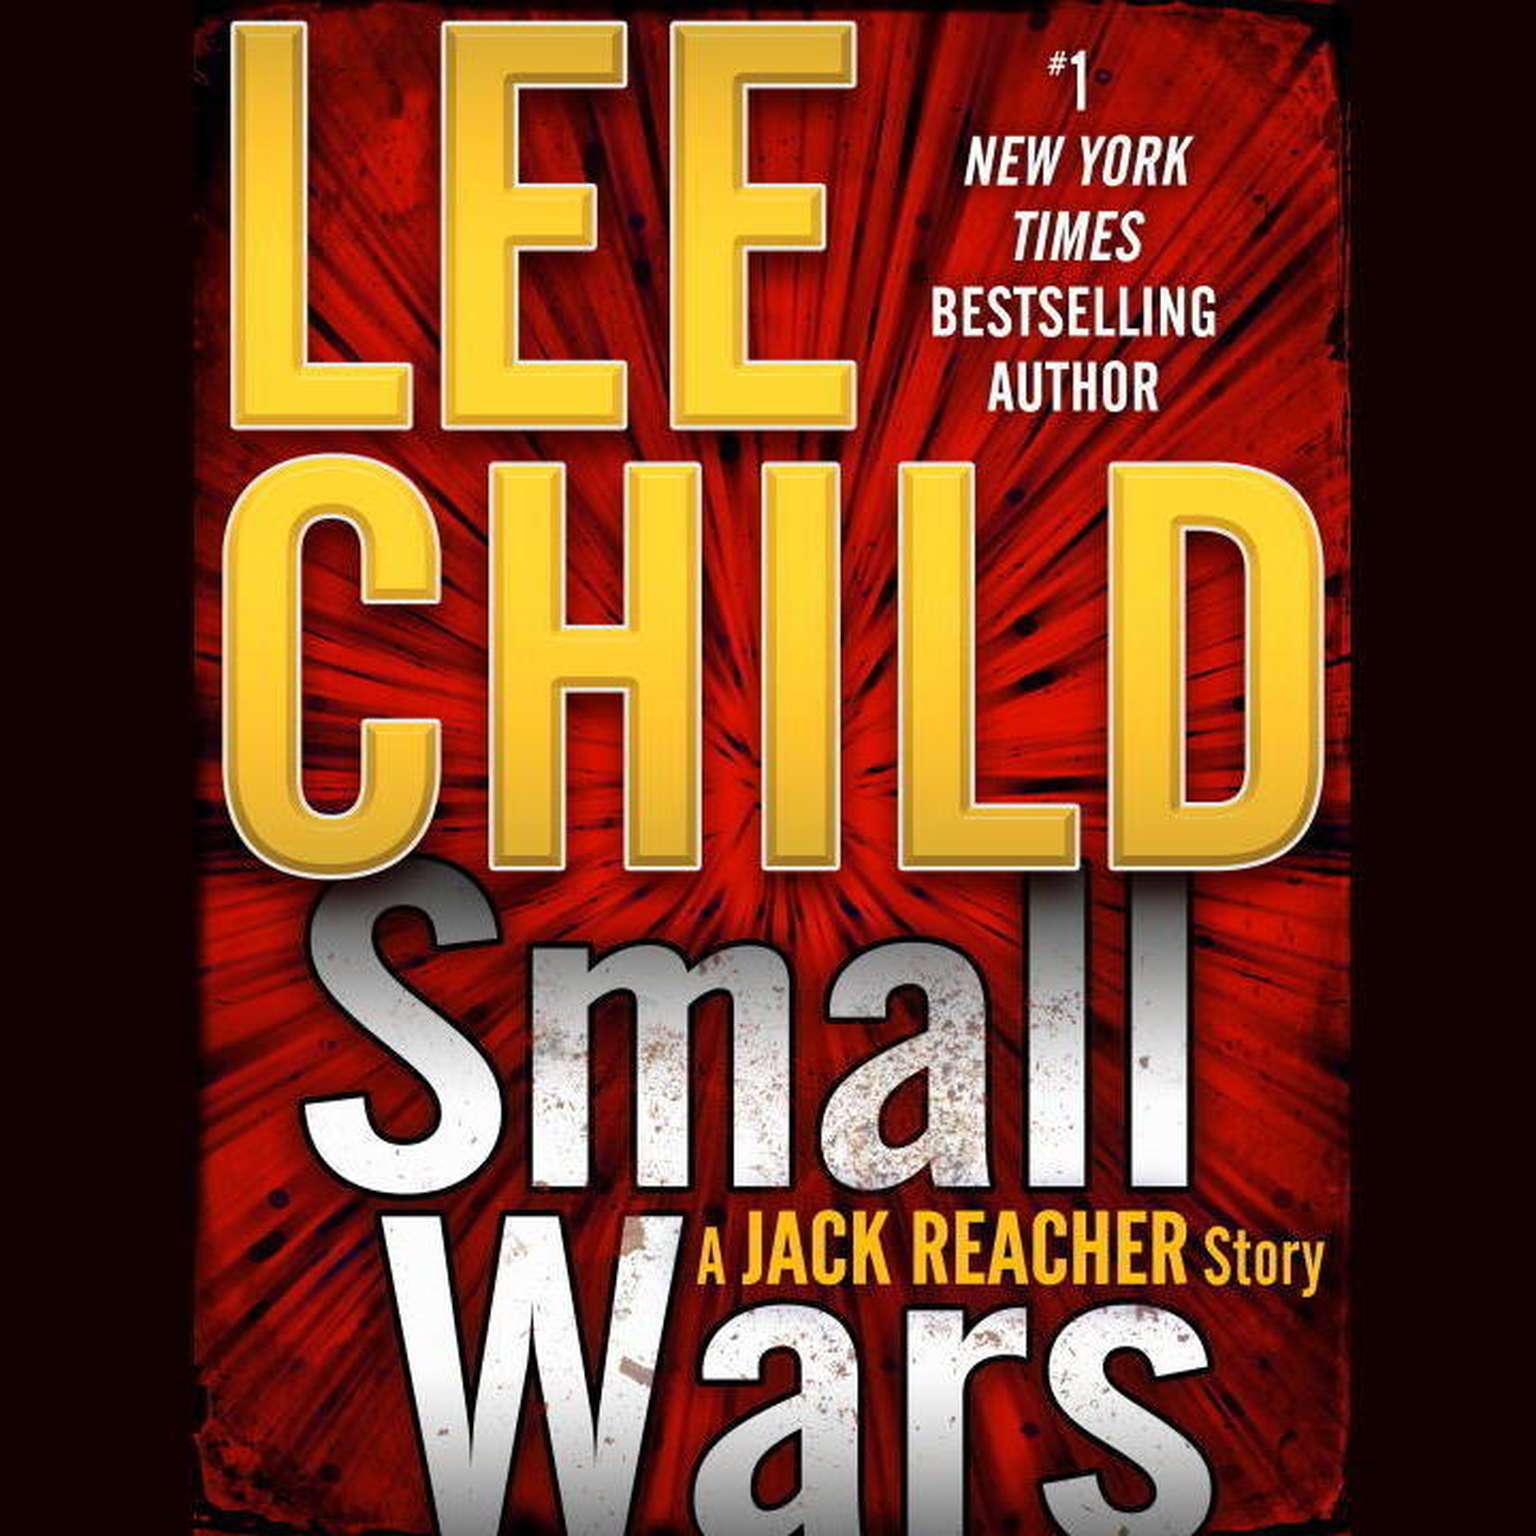 Printable Small Wars: A Jack Reacher Story: A Jack Reacher Story Audiobook Cover Art